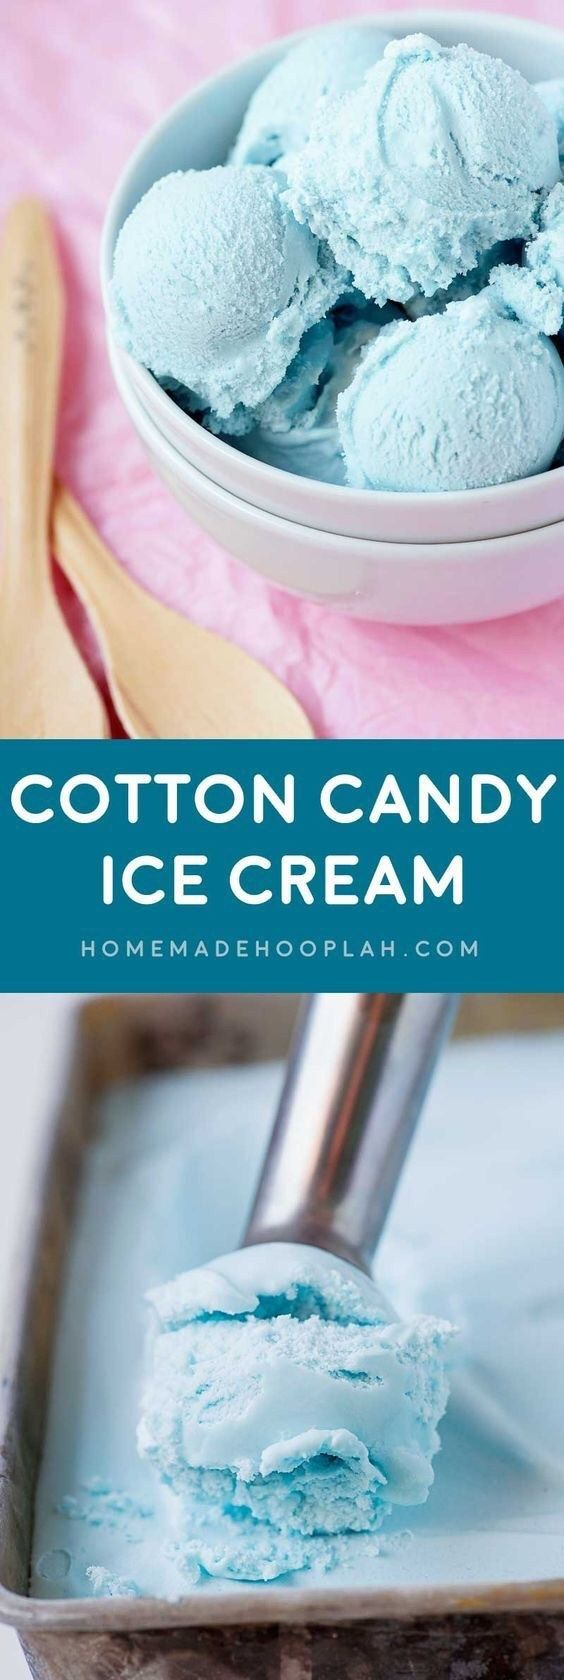 21 acceptable ice cream recipes for any time of the year - Healthy lifestyle #icecreampopsicle